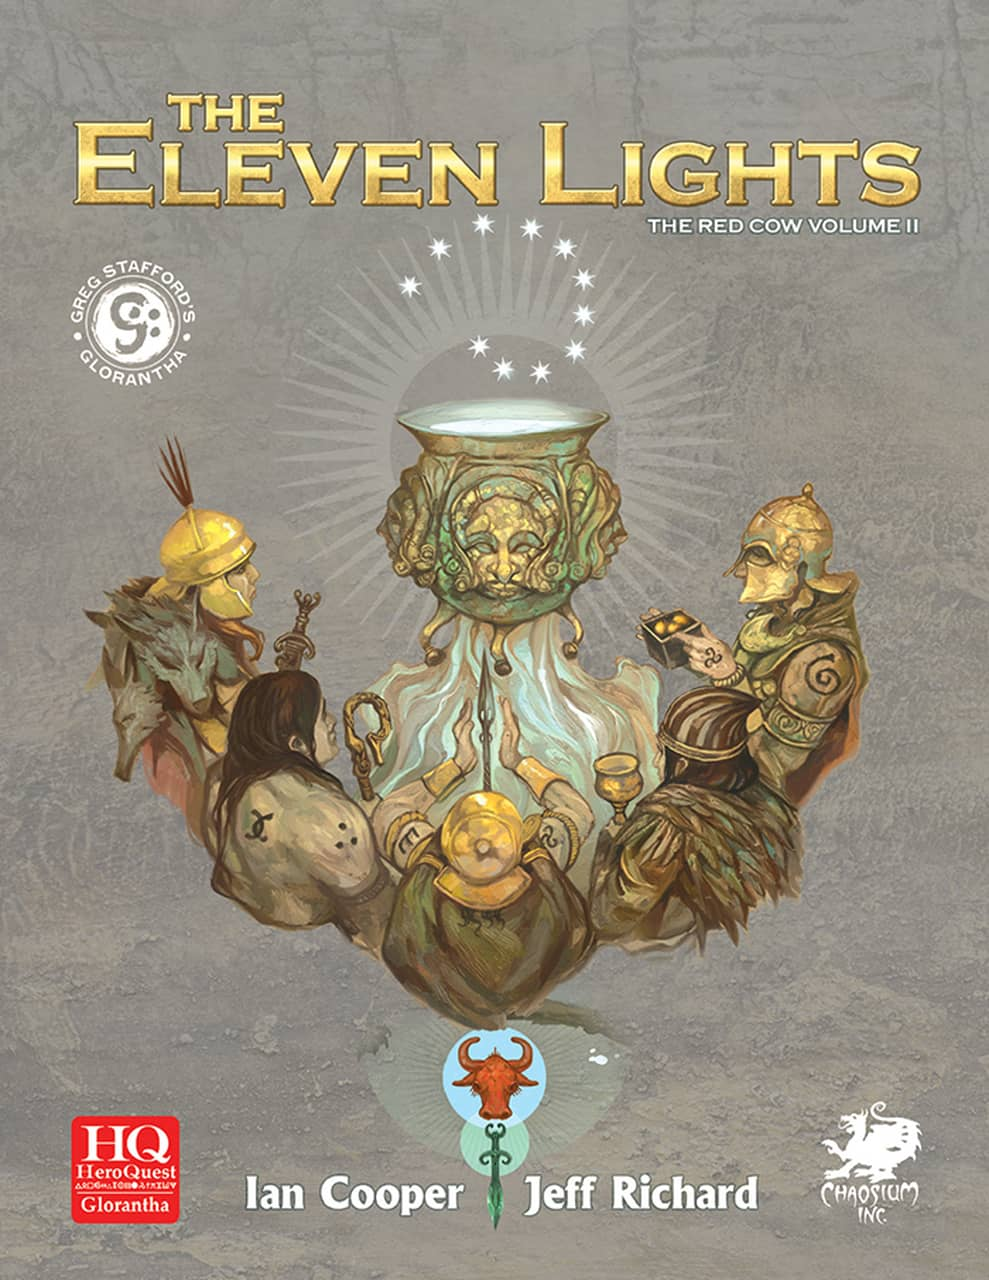 https://www.blackgate.com/wp-content/uploads/2020/07/The-Eleven-Lights.jpg